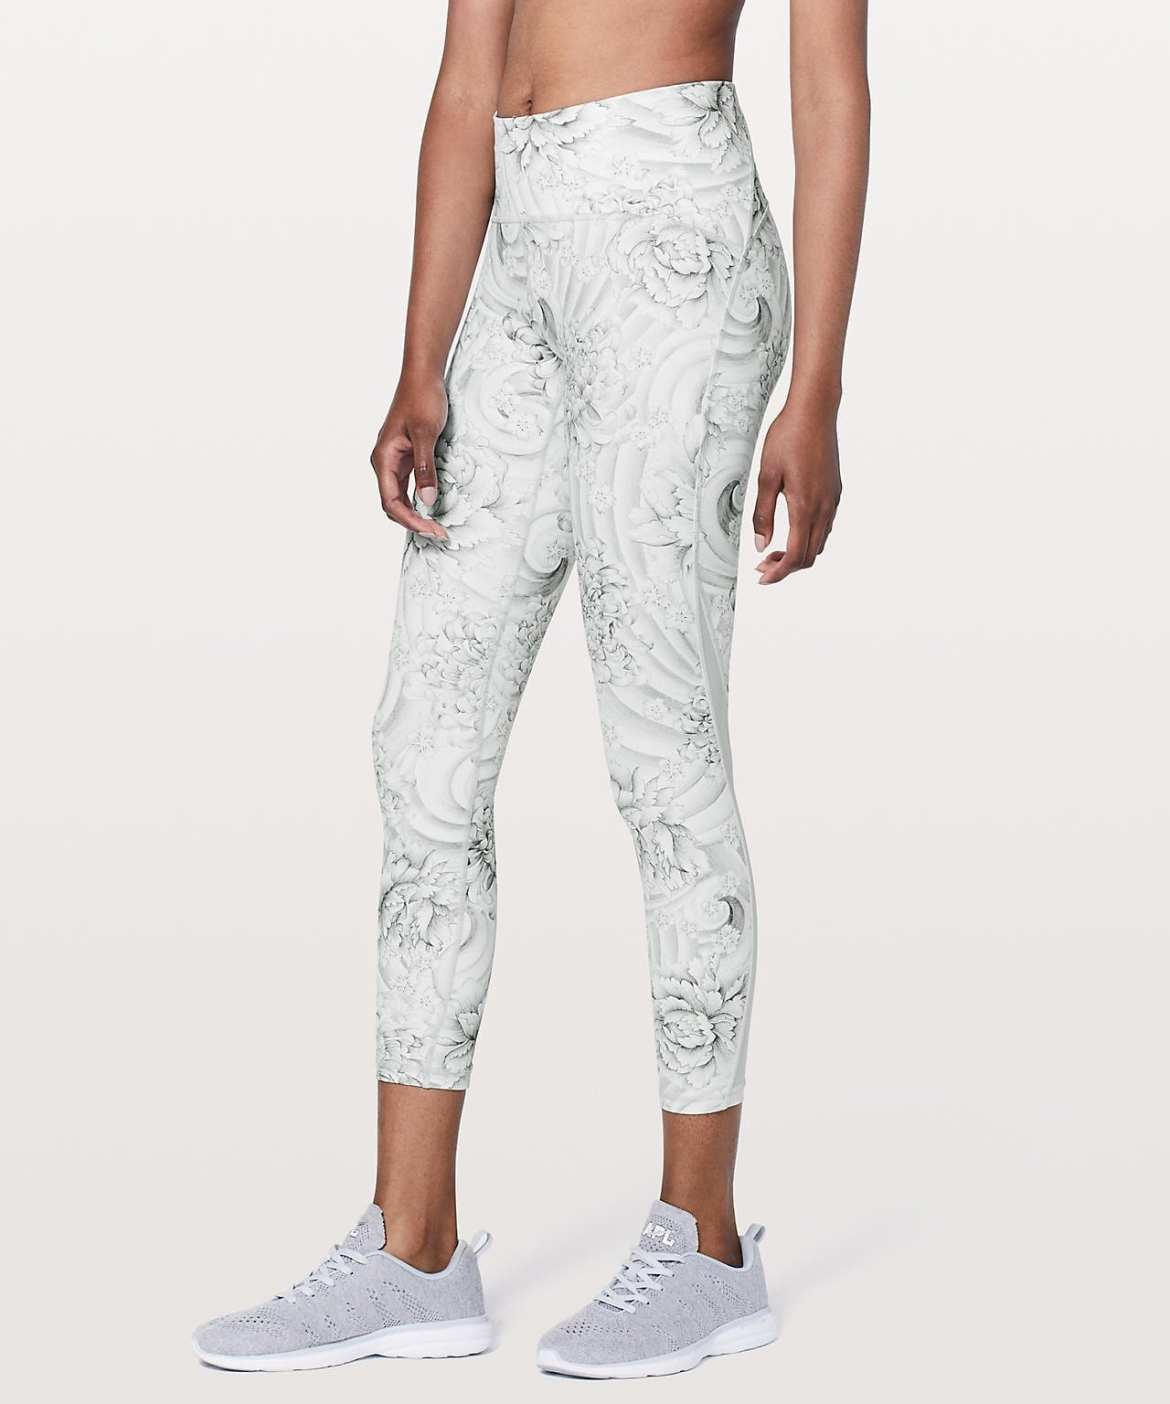 Lululemon Upload - Train Times 7:8 Pant - Twine White Multi:White